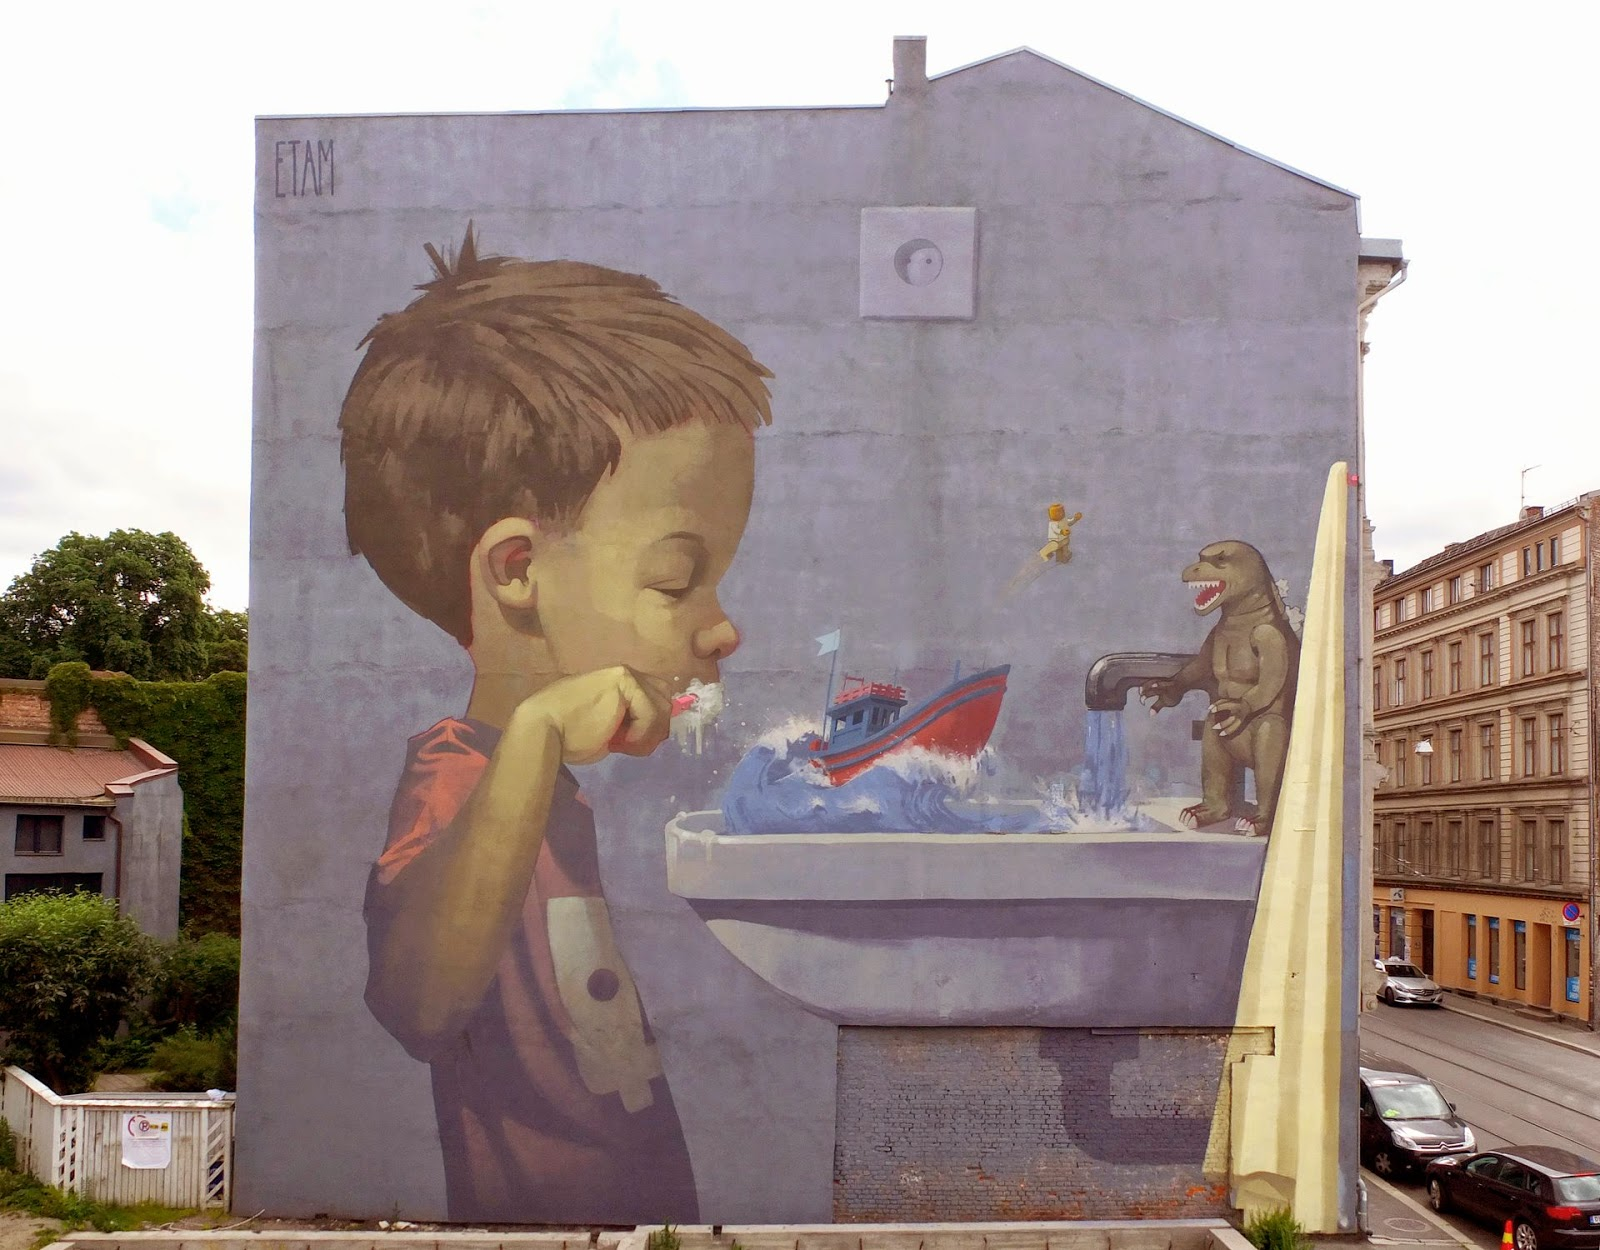 Etam cru new mural oslo norway streetartnews for Best mural artist